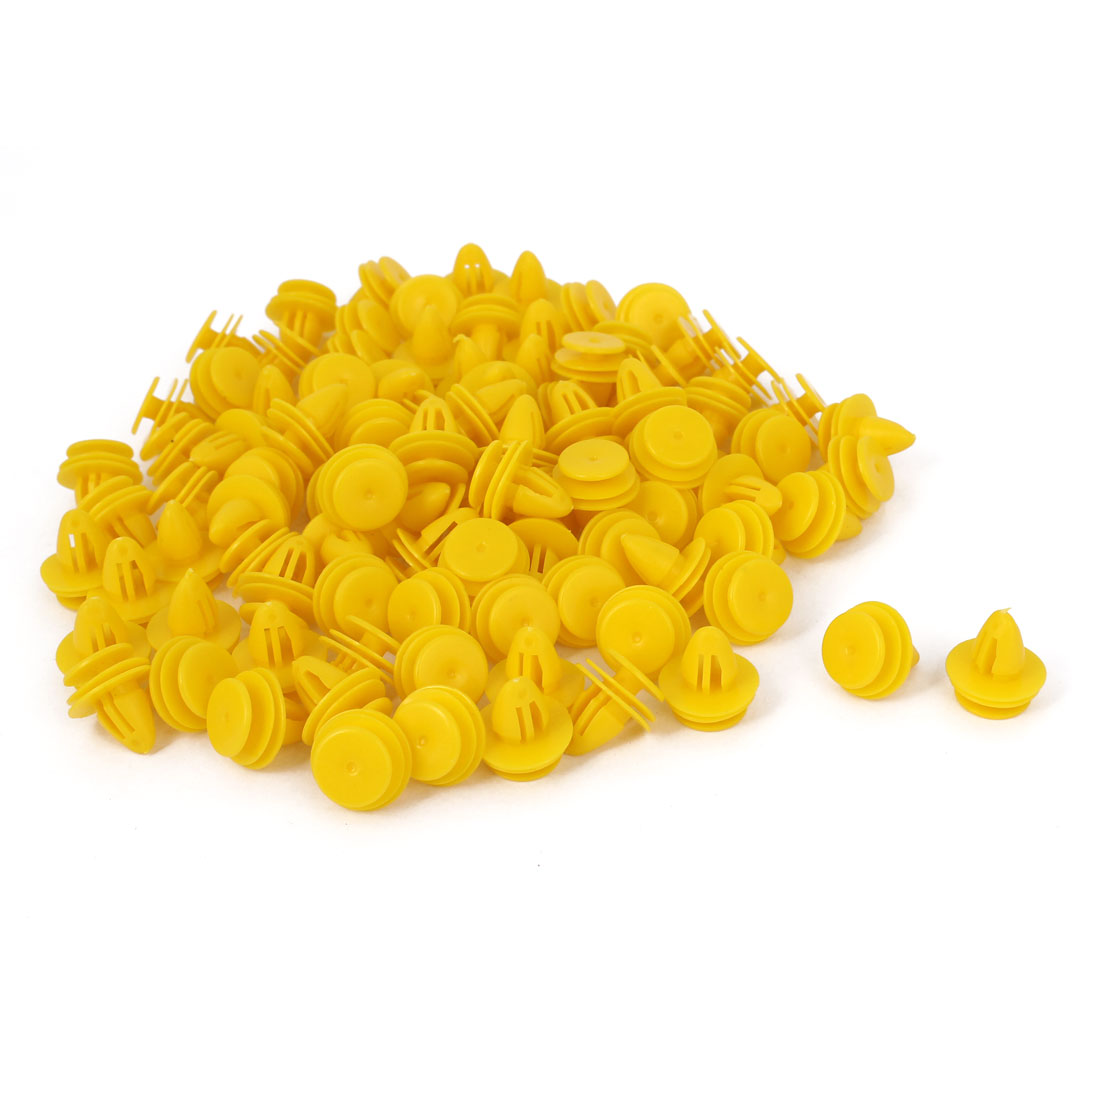 100 Pcs Yellow Plastic Rivet Trim Fastener Moulding Clips 9mm x 11mm x 15mm